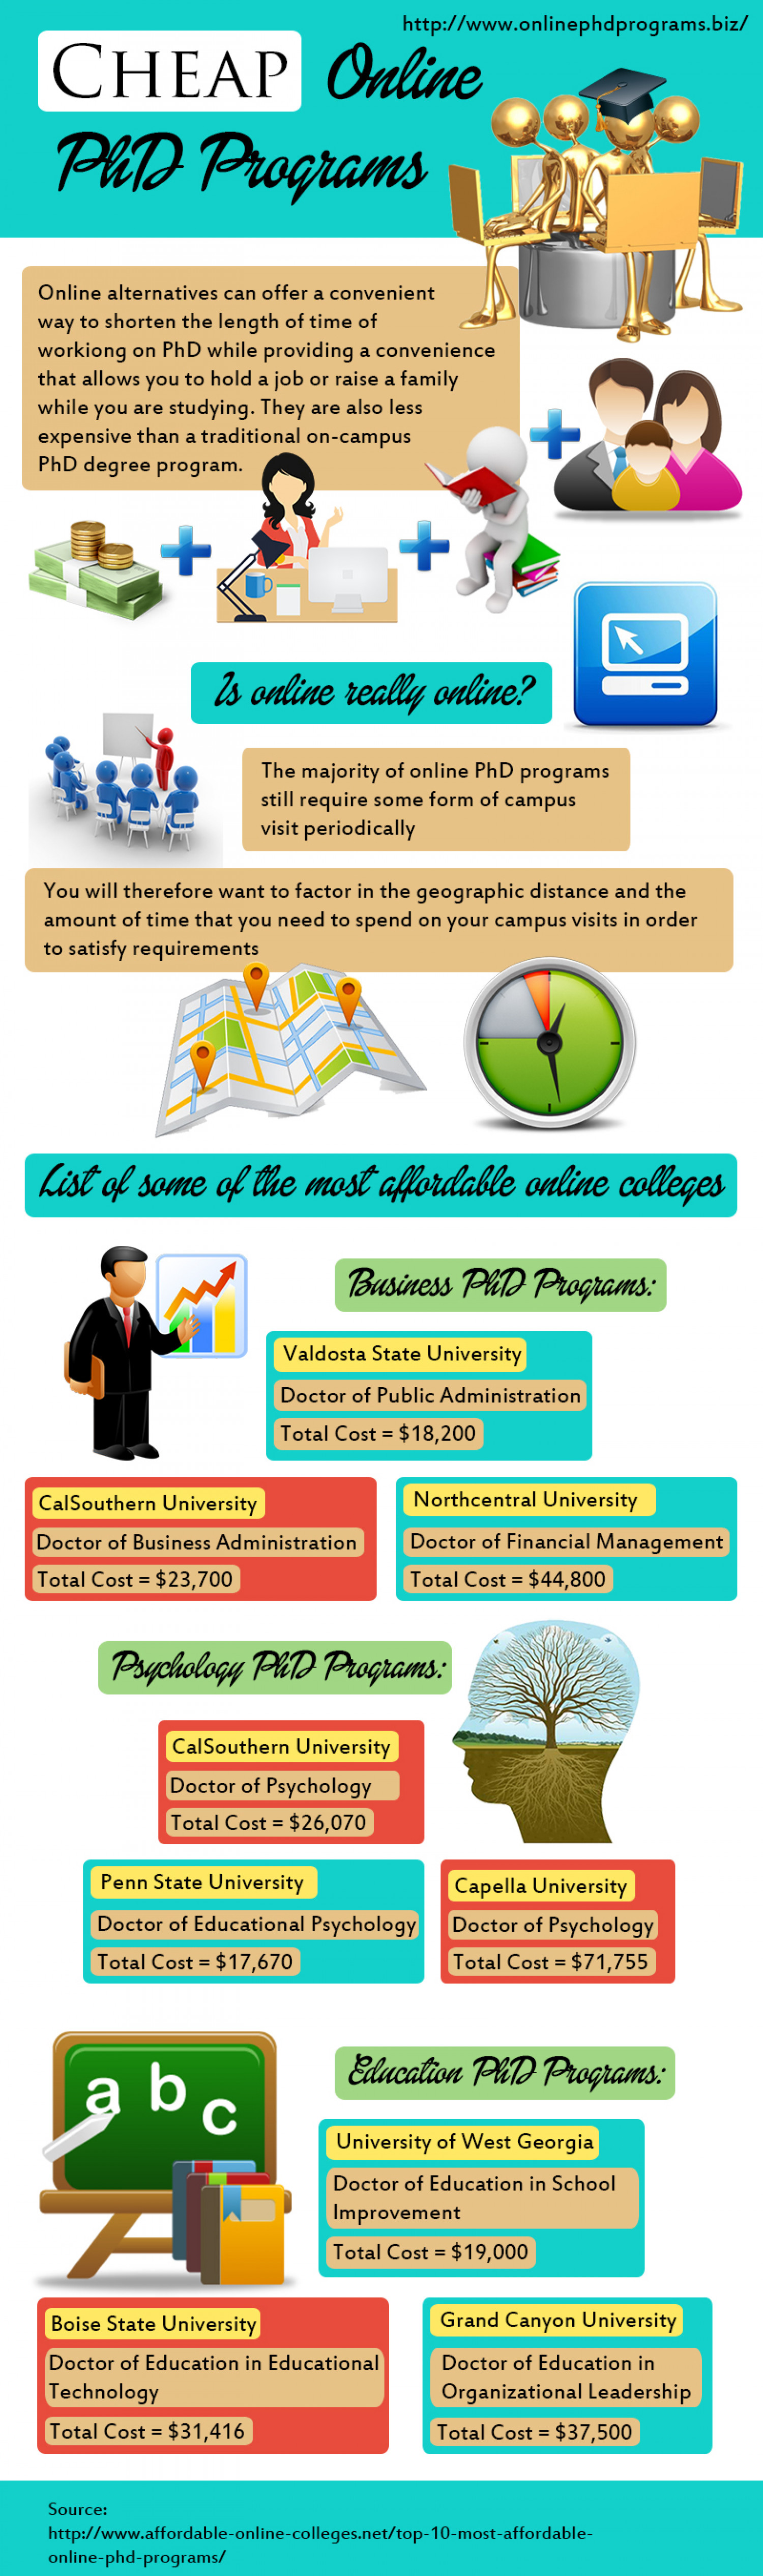 application essay for doctorate in education program